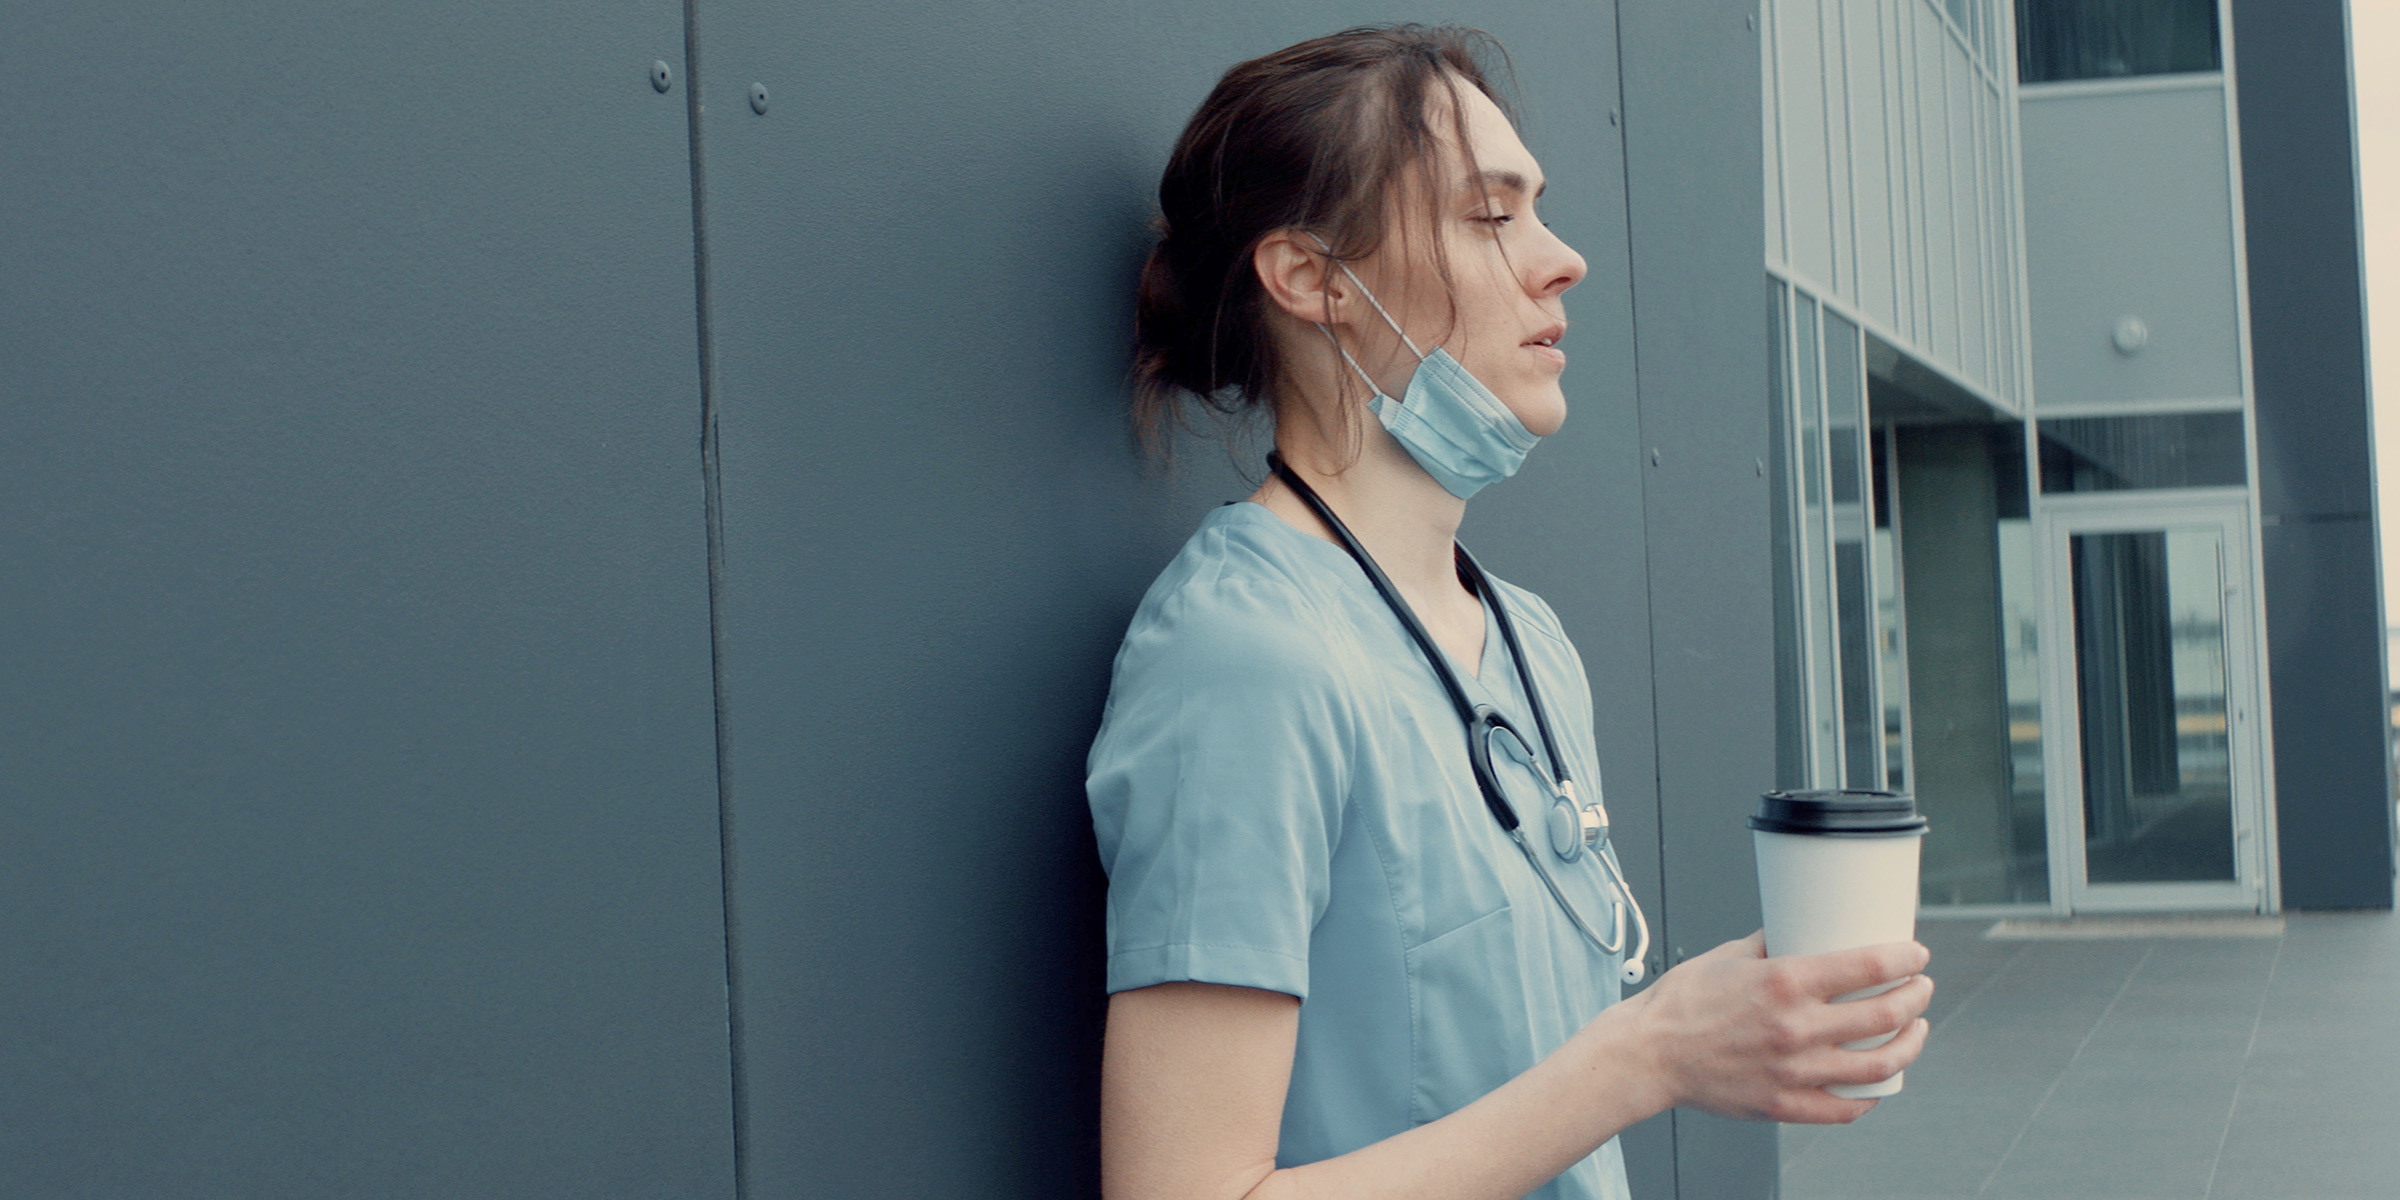 A young nurse looking tired and standing outside sipping coffee